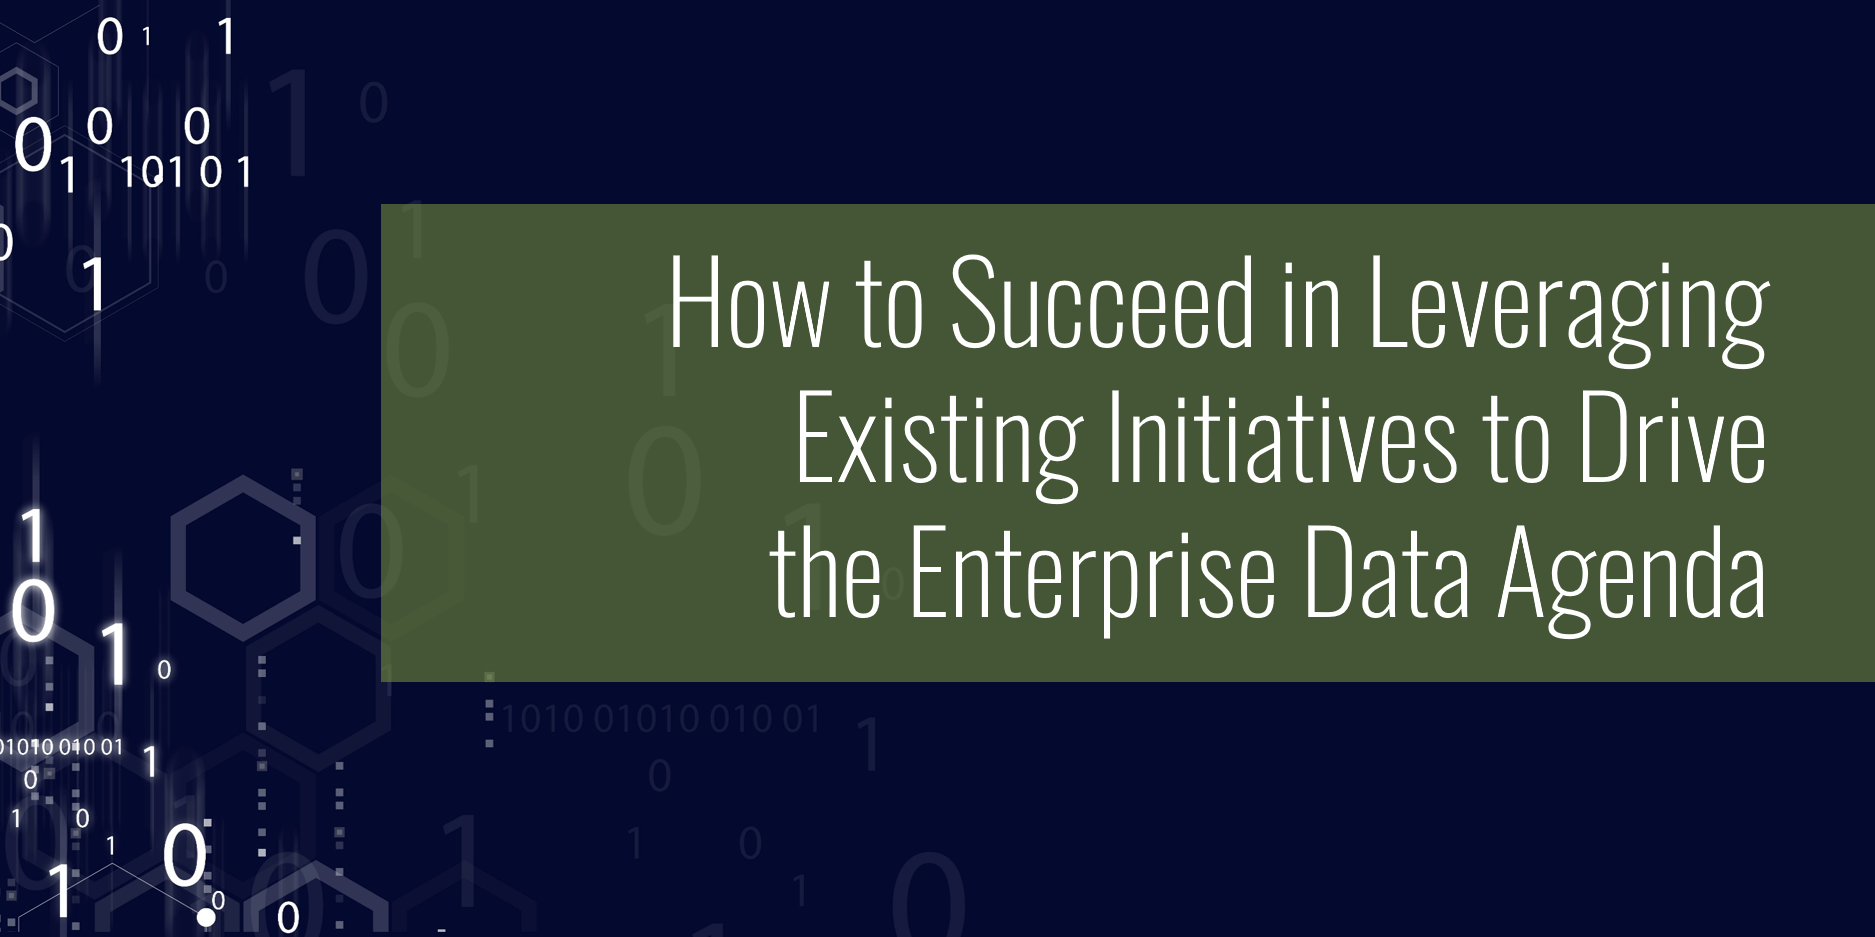 How to Succeed in Leveraging Existing Initiatives to Drive the Enterprise Data Agenda